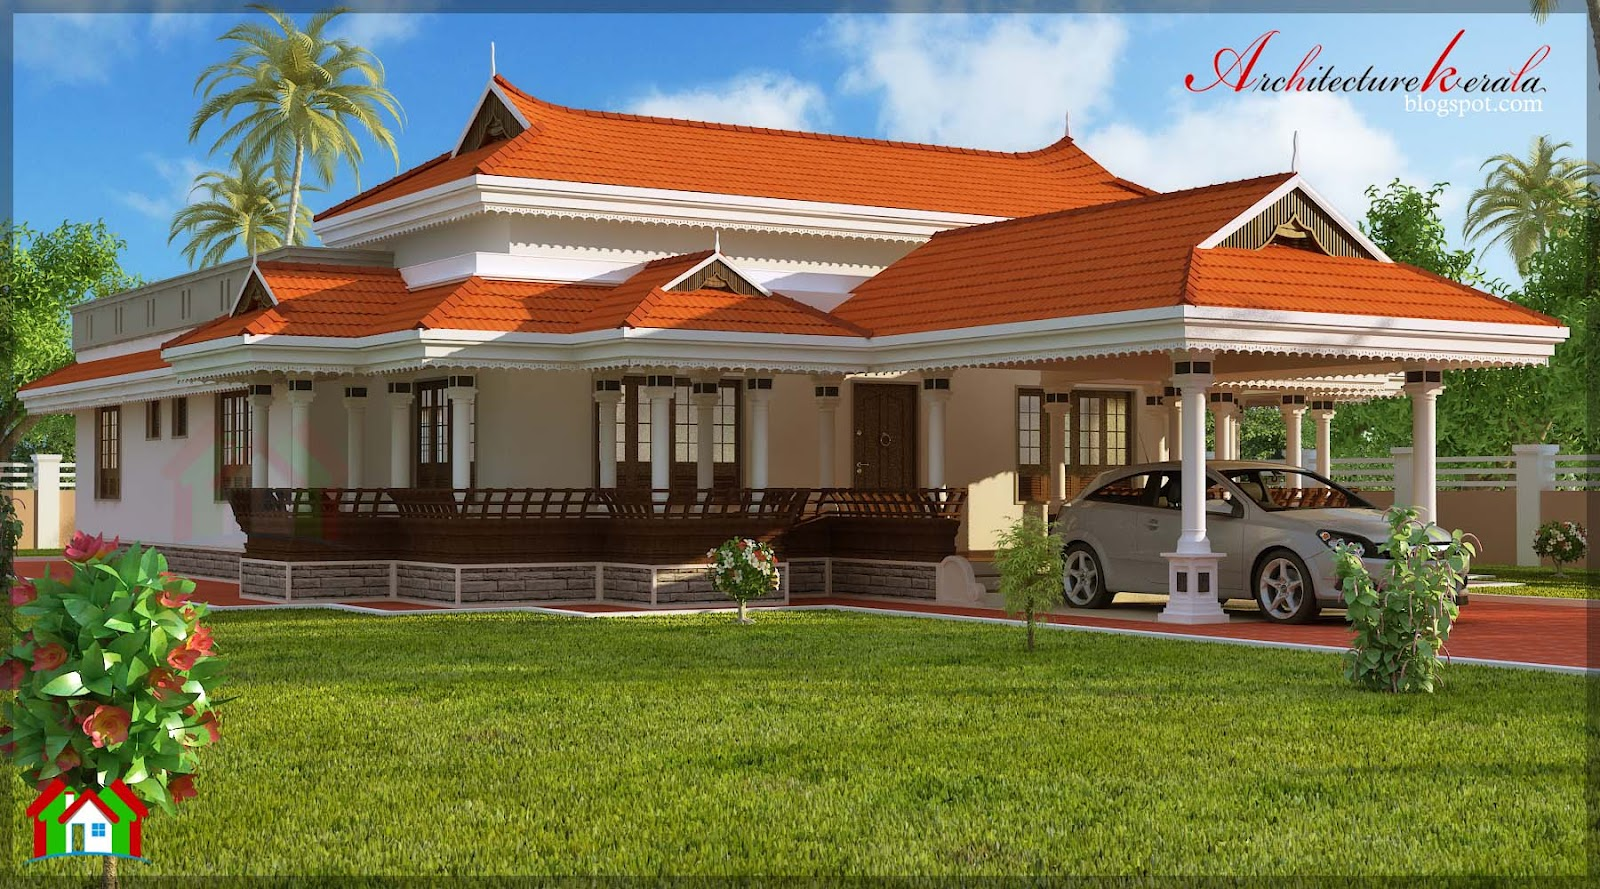 3 bhk in single floor house elevation architecture kerala for Single floor house elevations indian style